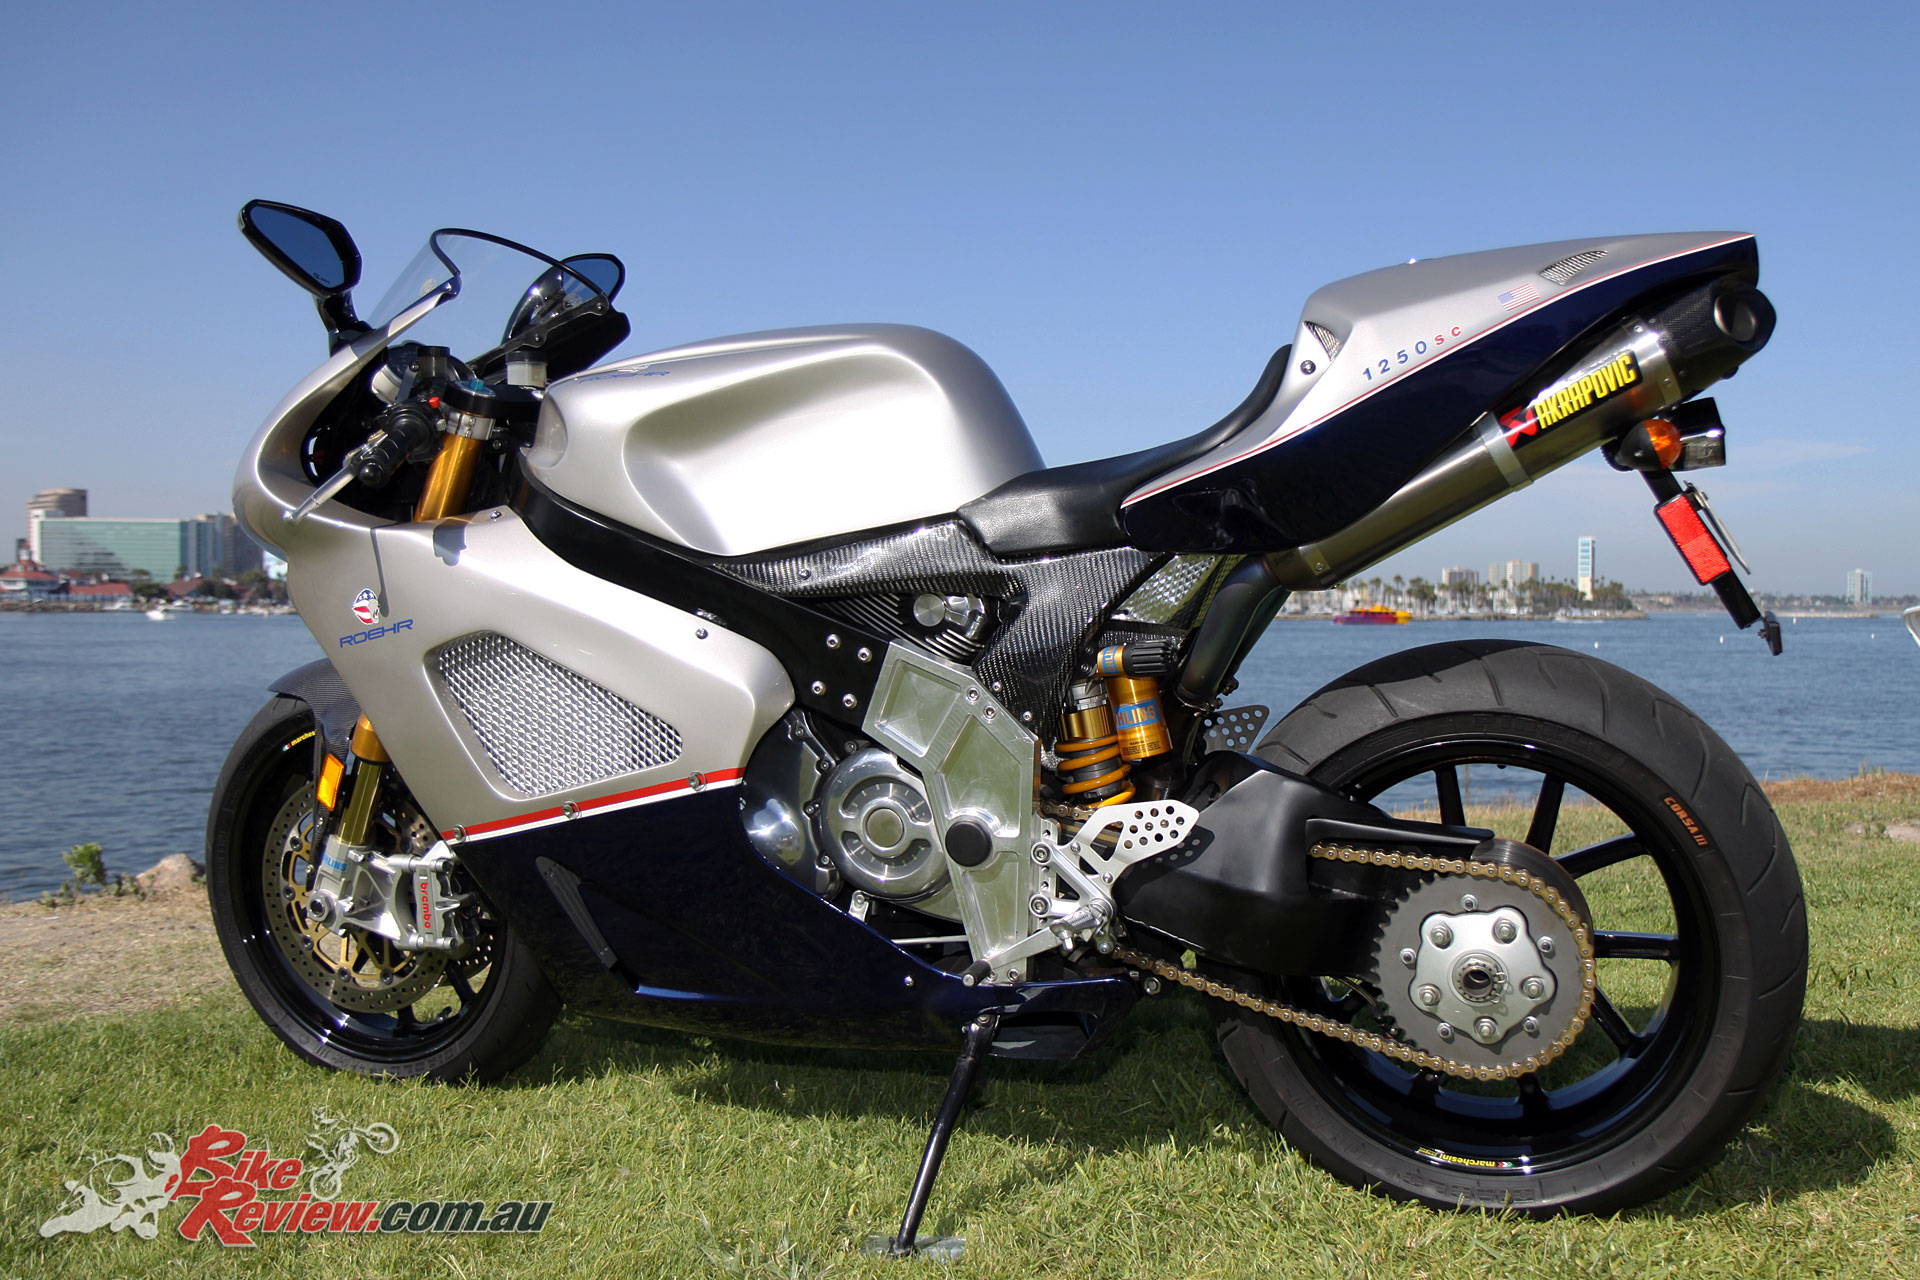 The Roehr 1250sc was even favourably comapred to Ducati's 1198